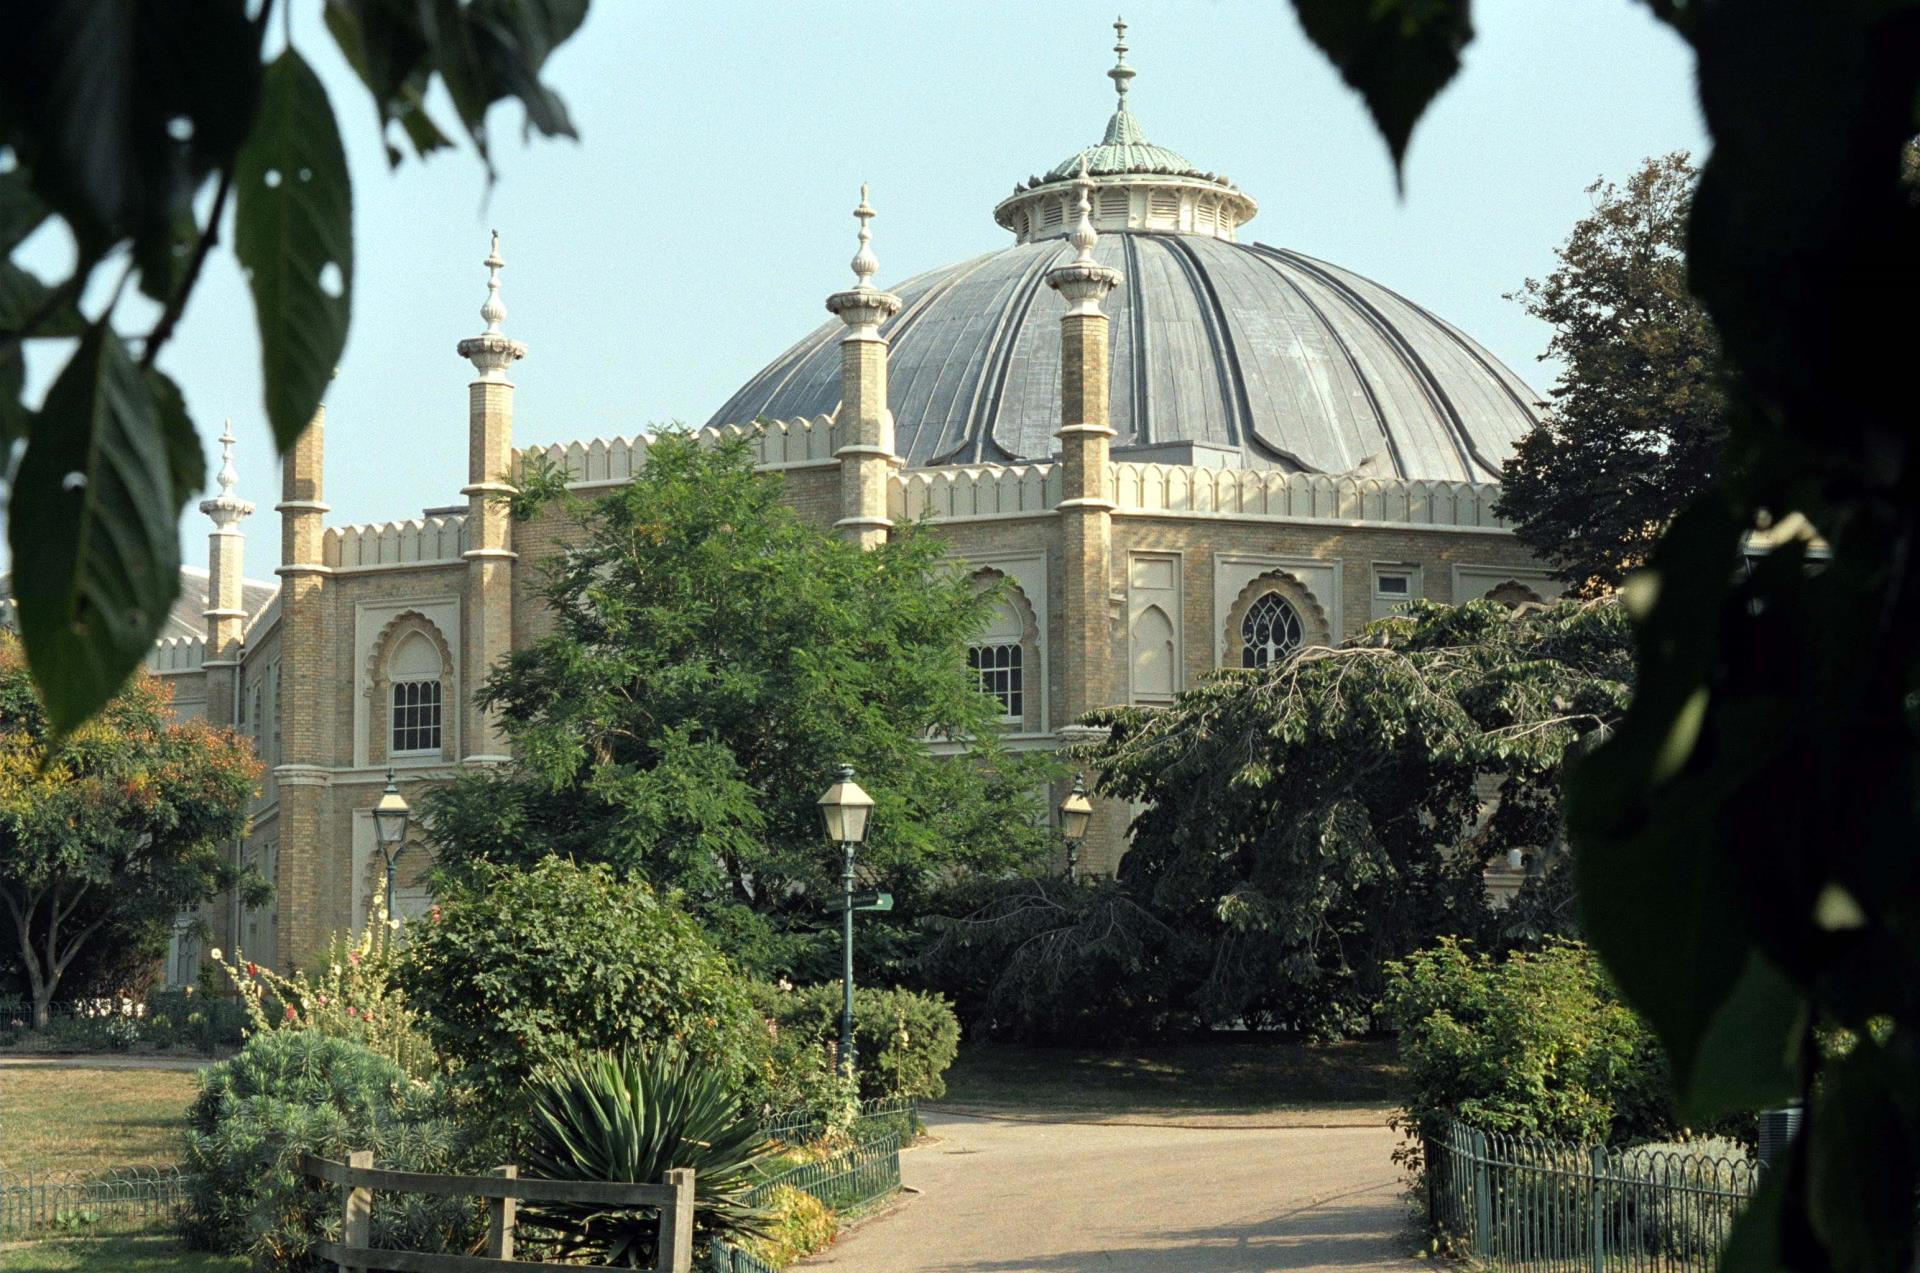 Picture of Brighton Dome